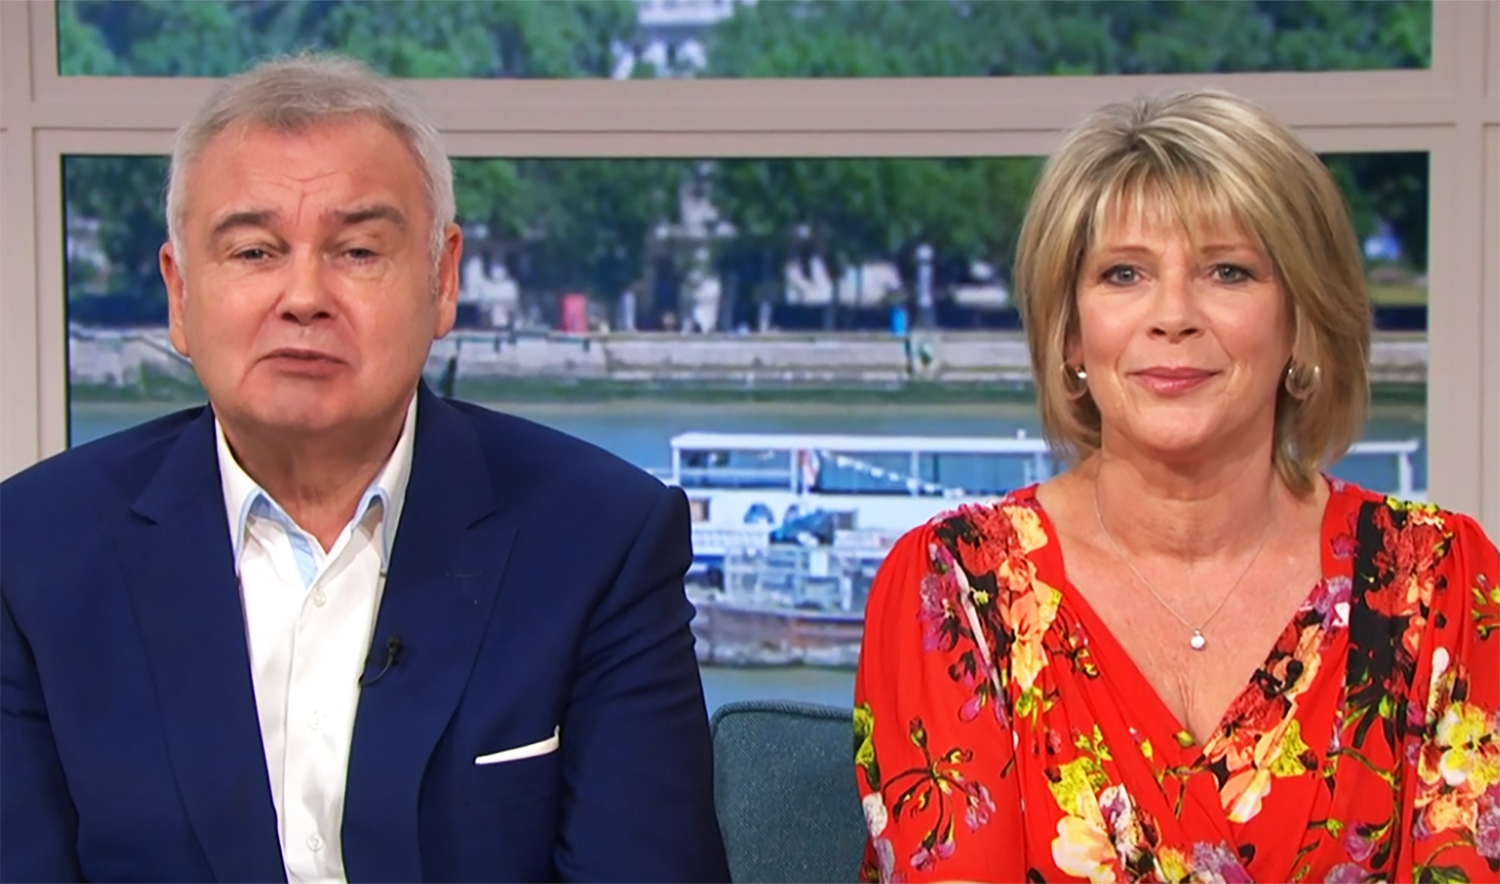 This Morning viewers have very mixed reaction as Eamonn Holmes and Ruth Langsford host